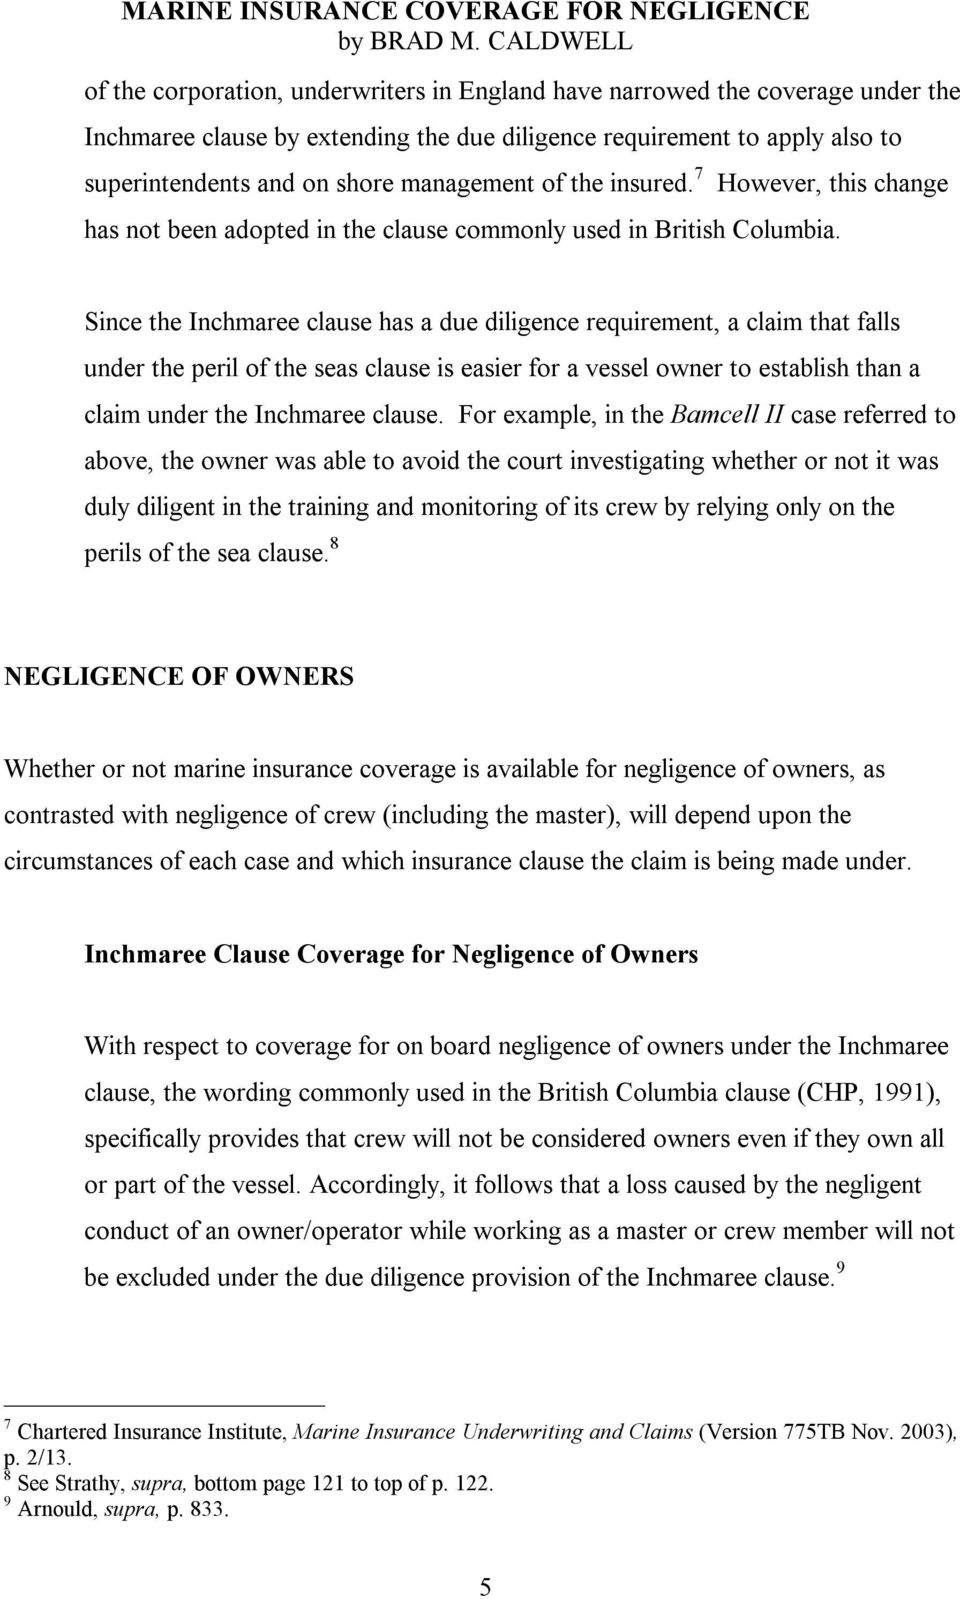 Since the Inchmaree clause has a due diligence requirement, a claim that falls under the peril of the seas clause is easier for a vessel owner to establish than a claim under the Inchmaree clause.